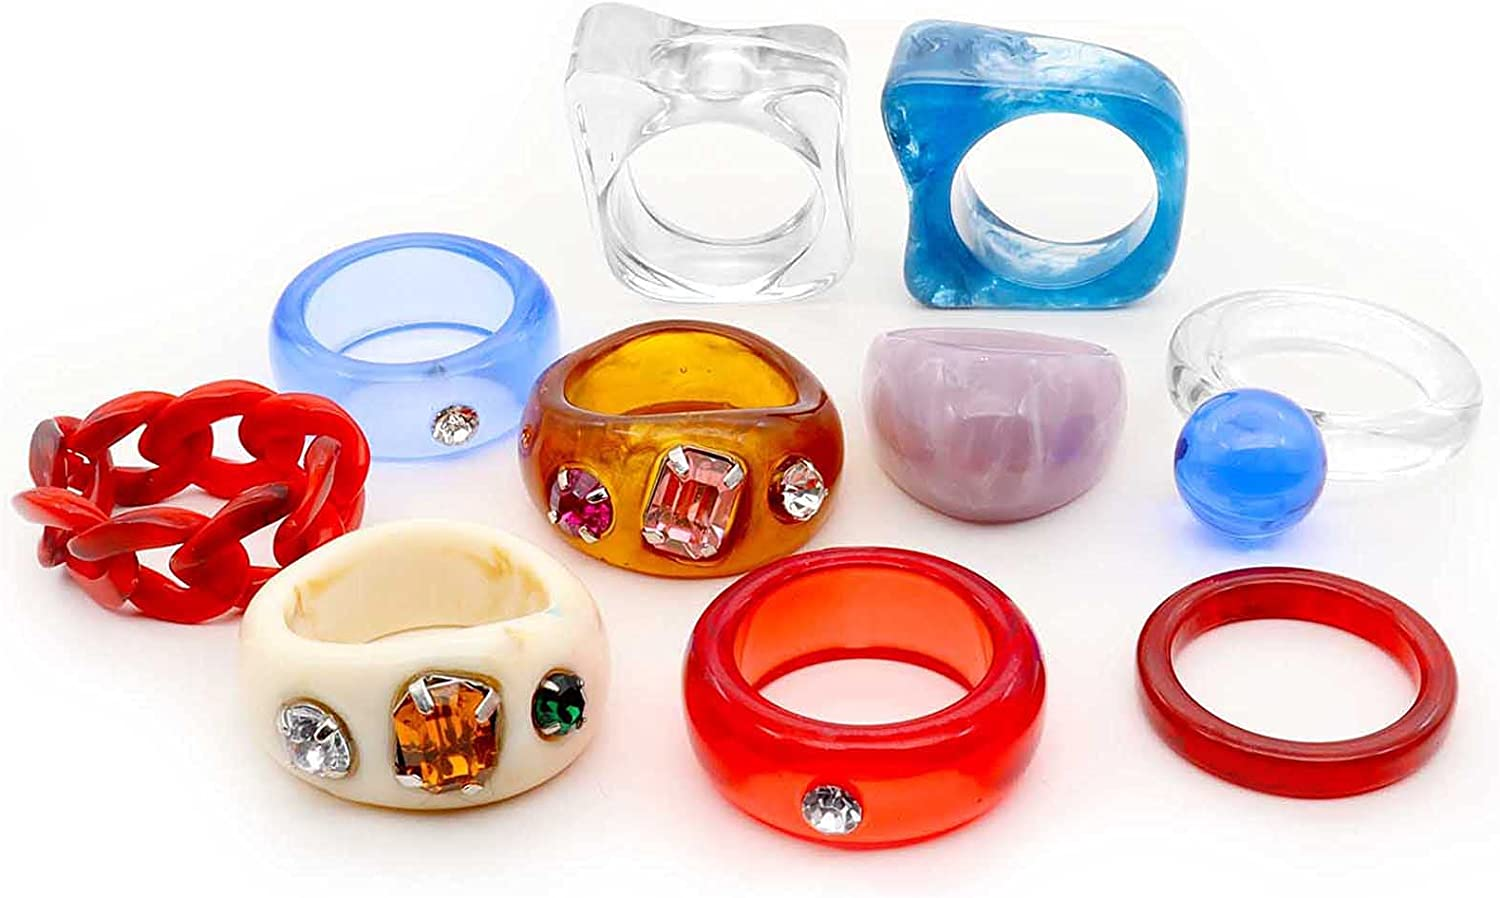 ZZ ZINFANDEL Resin Rings Colorful Acrylic Rings for Women,10PCS Vintage Stacking Plastic Resin Ring Wedding Rings for Girls Lolita Party Cute Jewelry